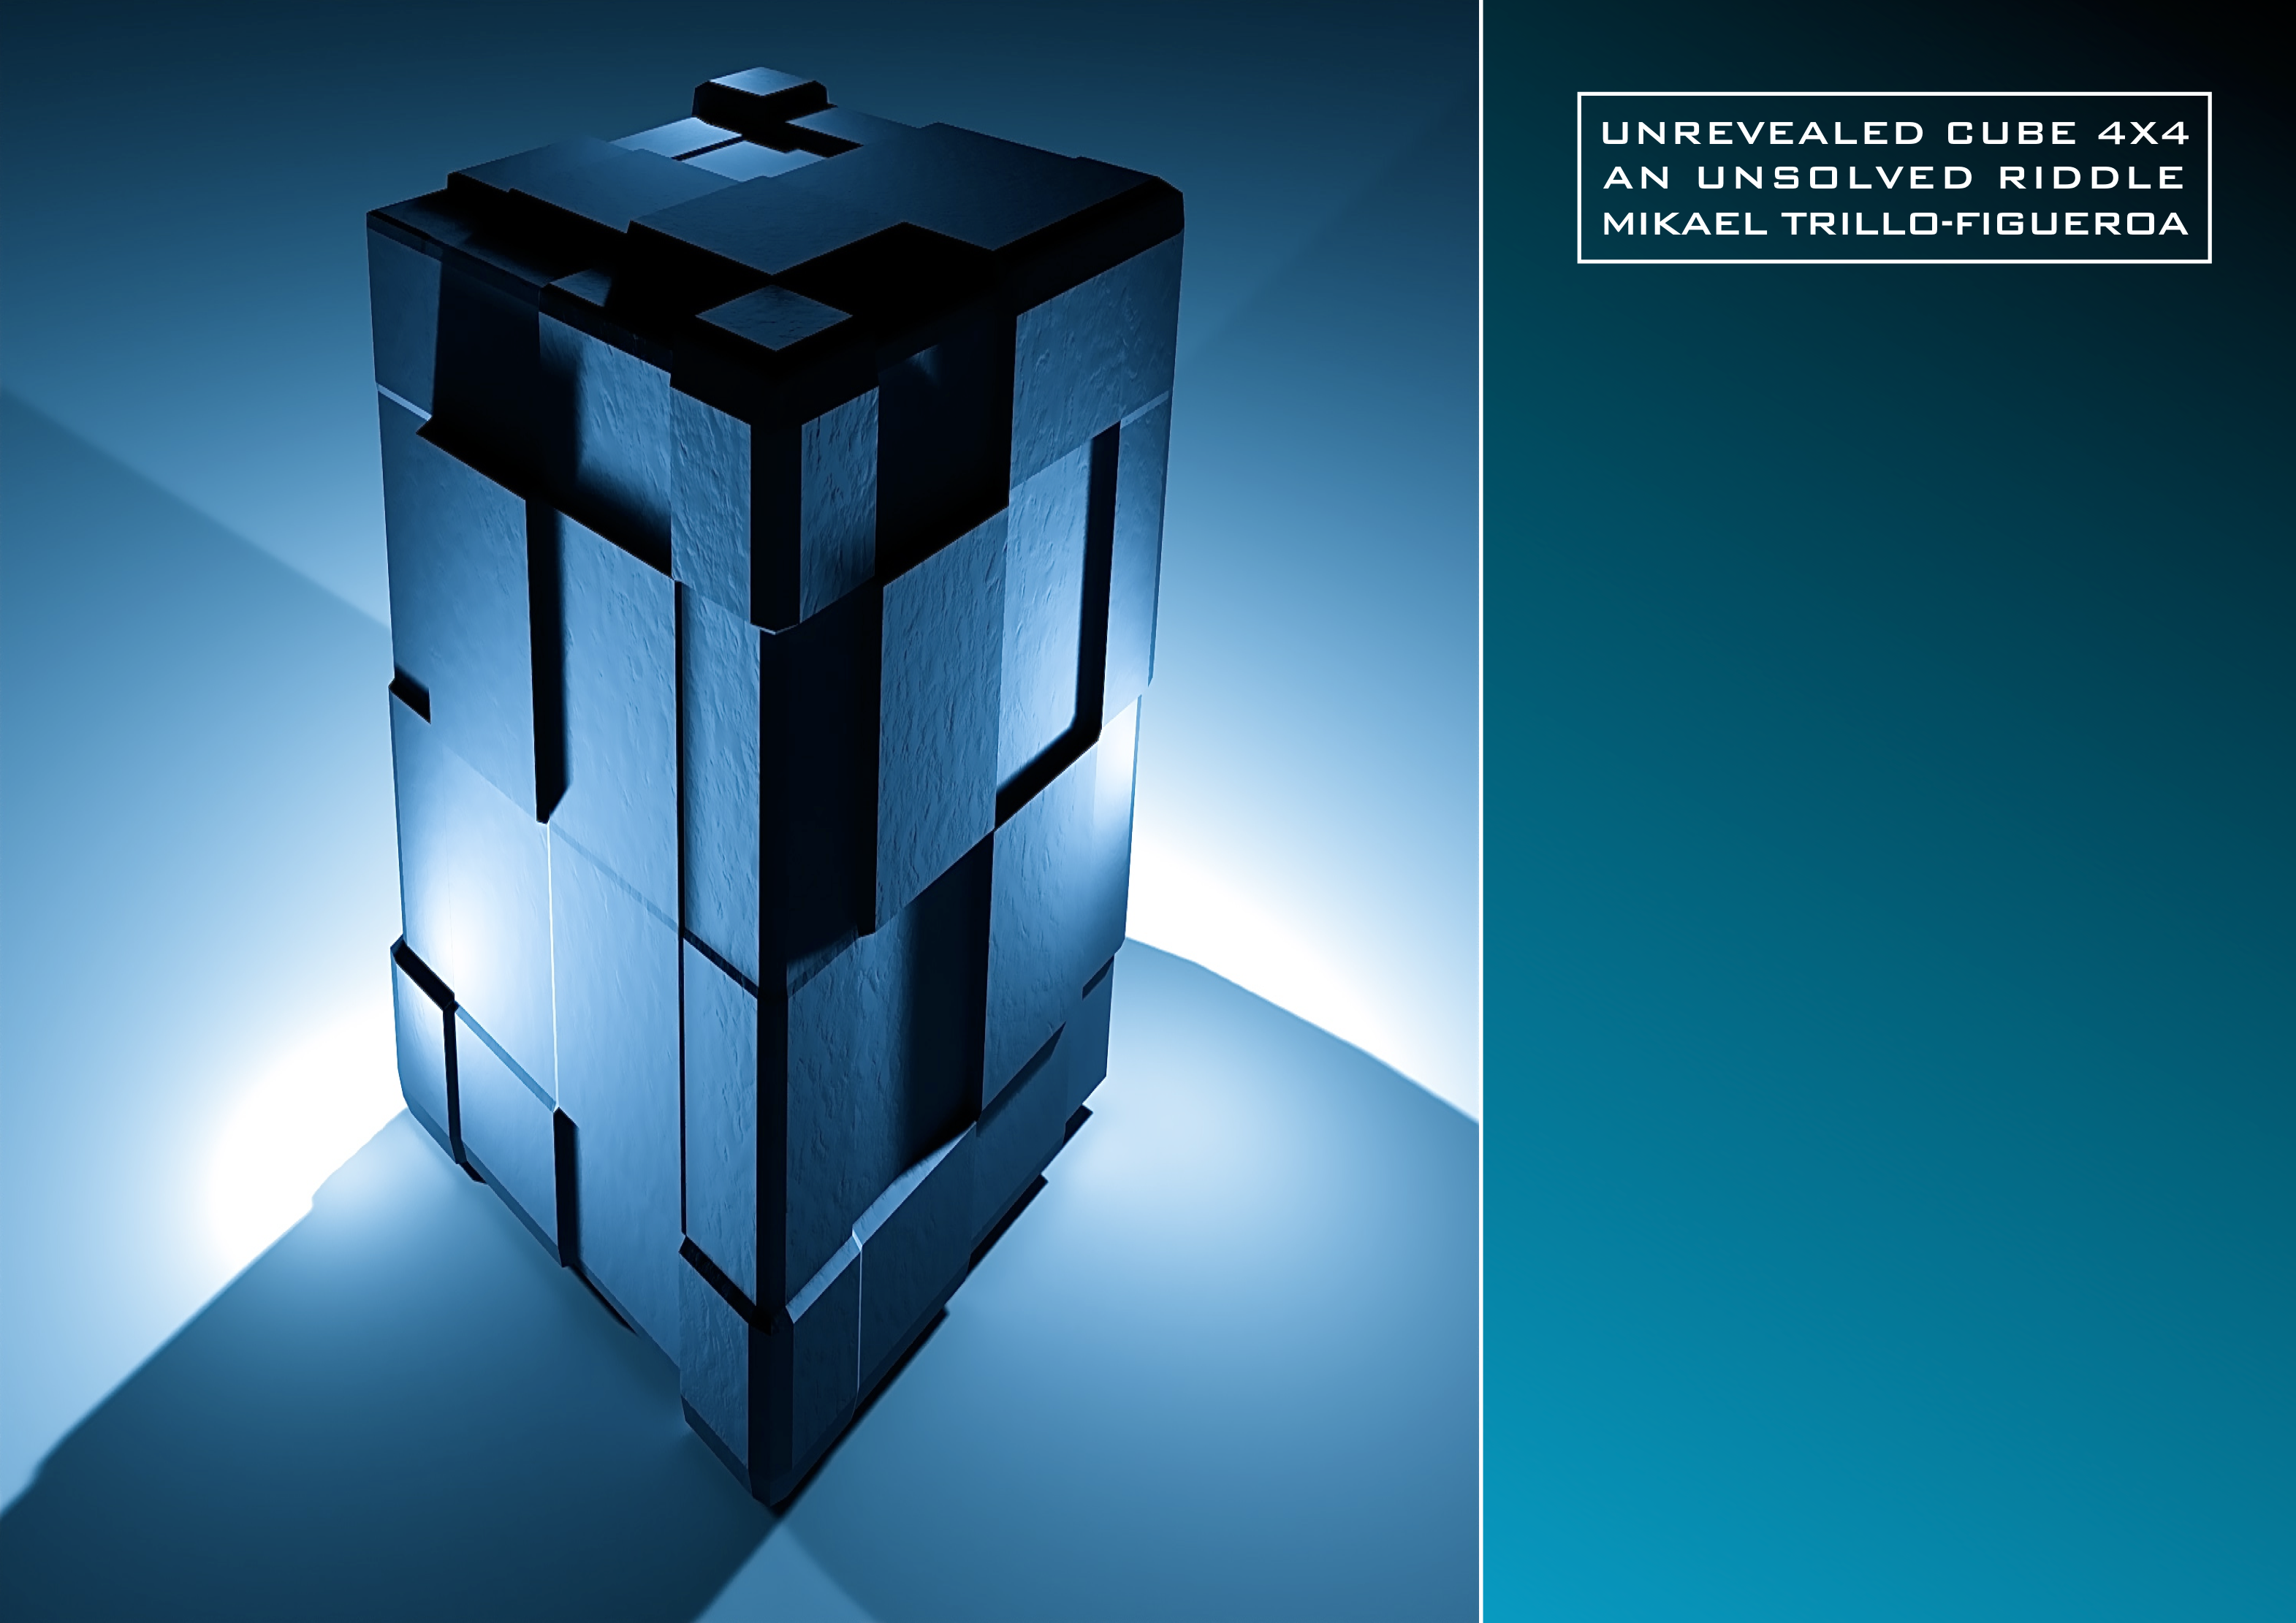 Unrevealed Cube 4x4 new Version double A3 z